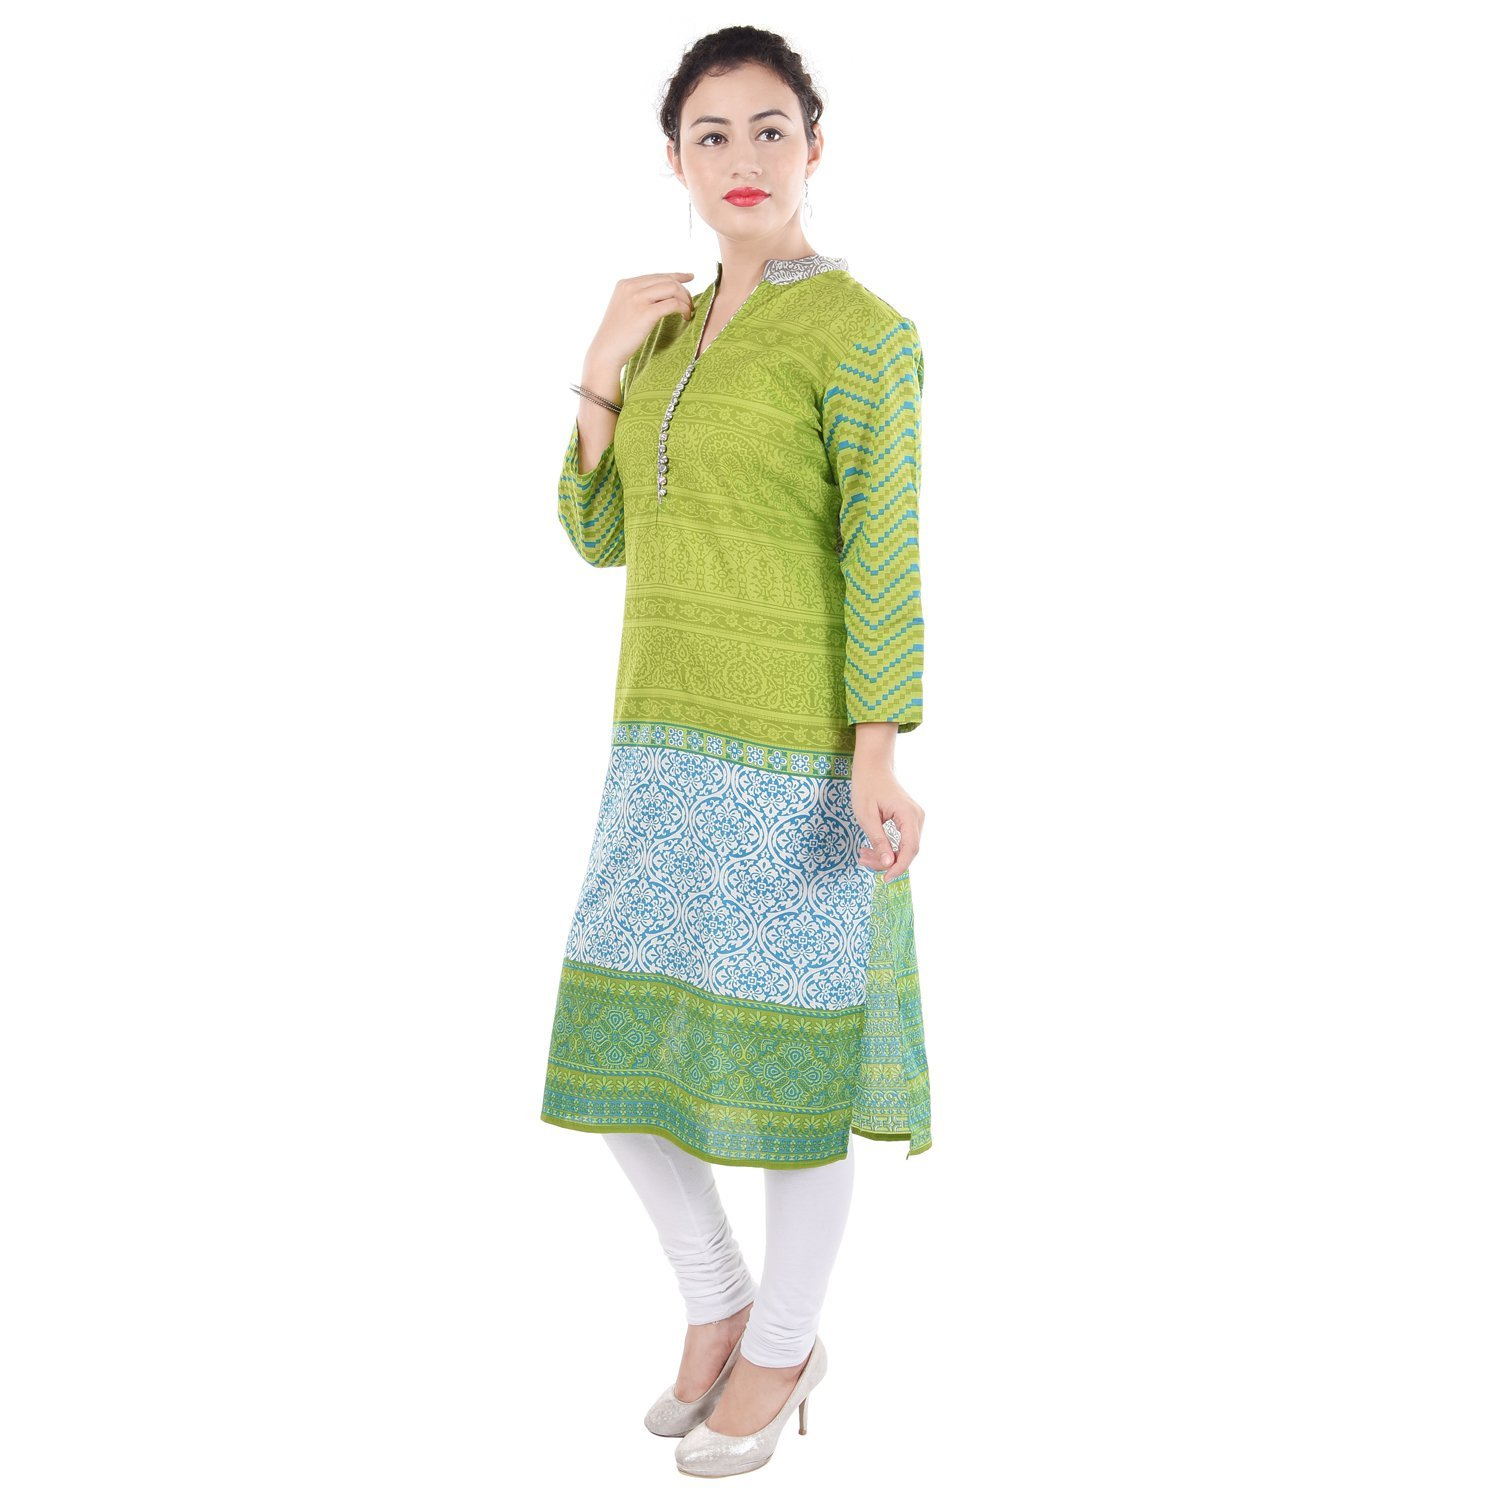 Chichi Women 3/4 Sleeve Tunic Embroidery Top Kurti Blouse (Yellow)(Women's Day Special),Medium,Fire-yellow by CHI (Image #2)